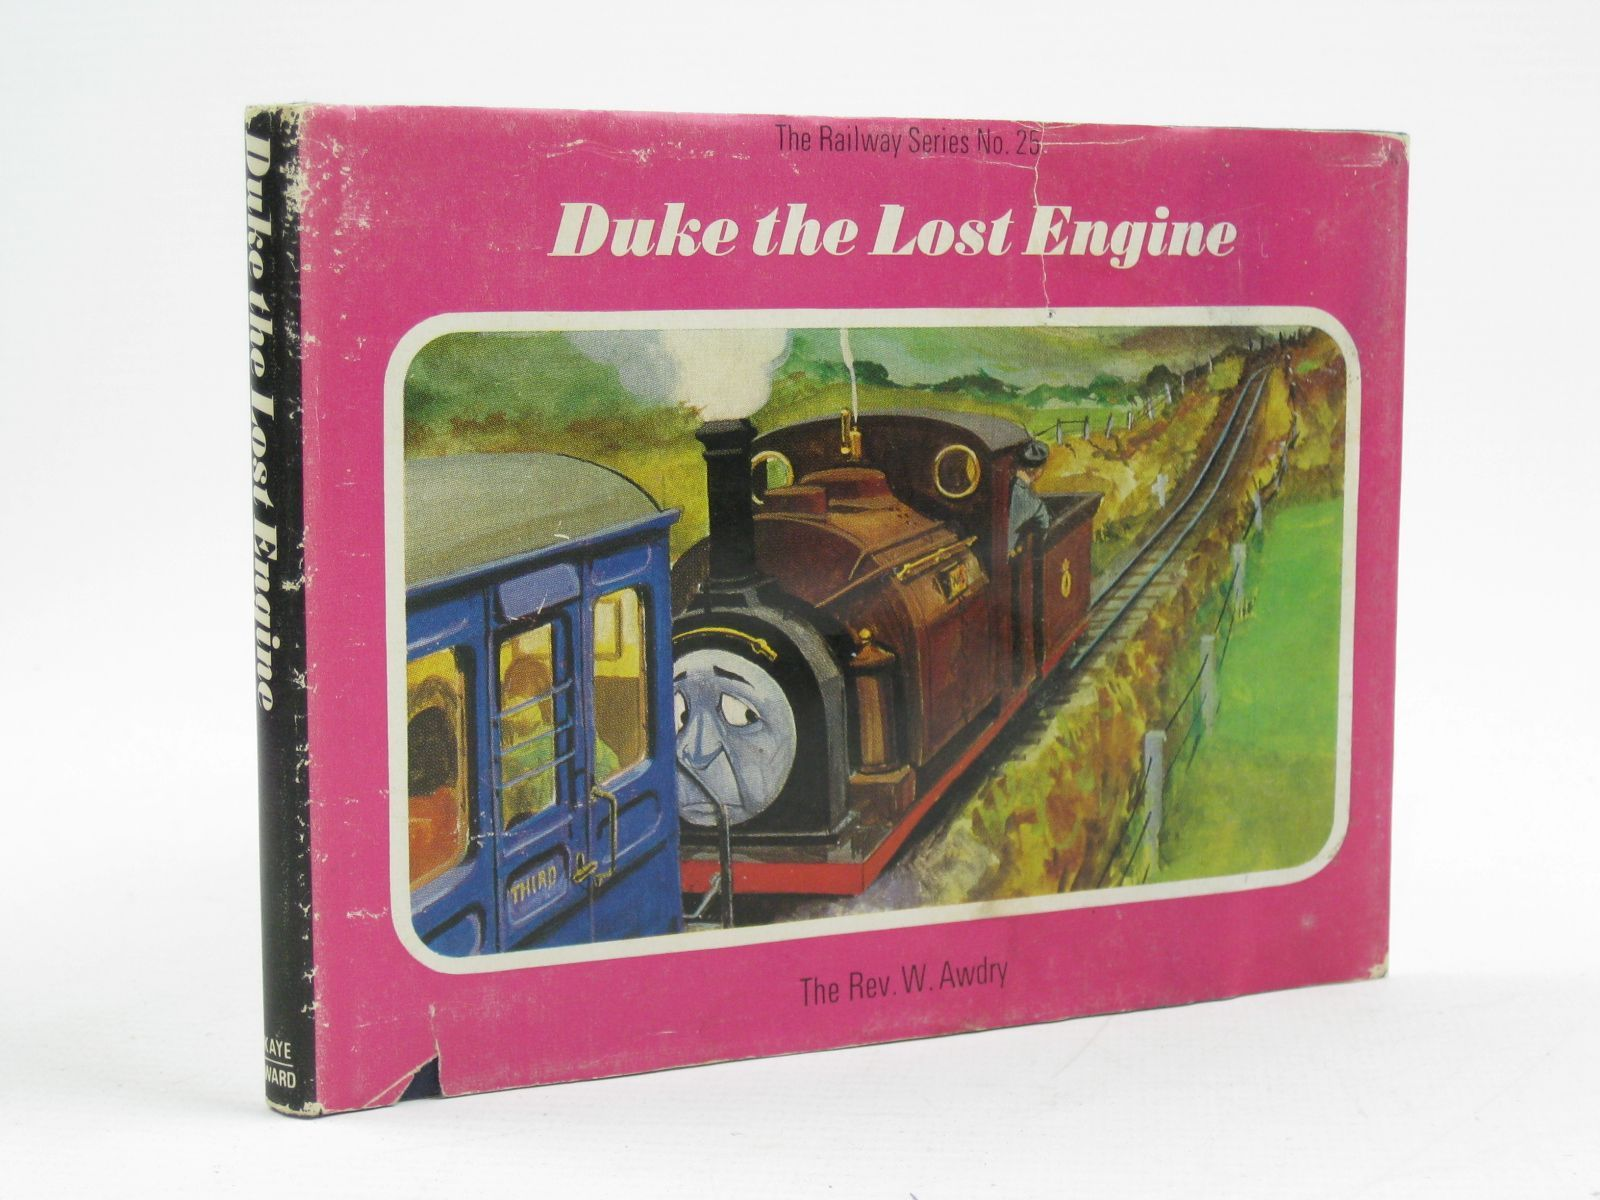 Photo of DUKE THE LOST ENGINE written by Awdry, Rev. W. illustrated by Edwards, Gunvor Edwards, Peter published by Kaye & Ward Ltd. (STOCK CODE: 1316742)  for sale by Stella & Rose's Books